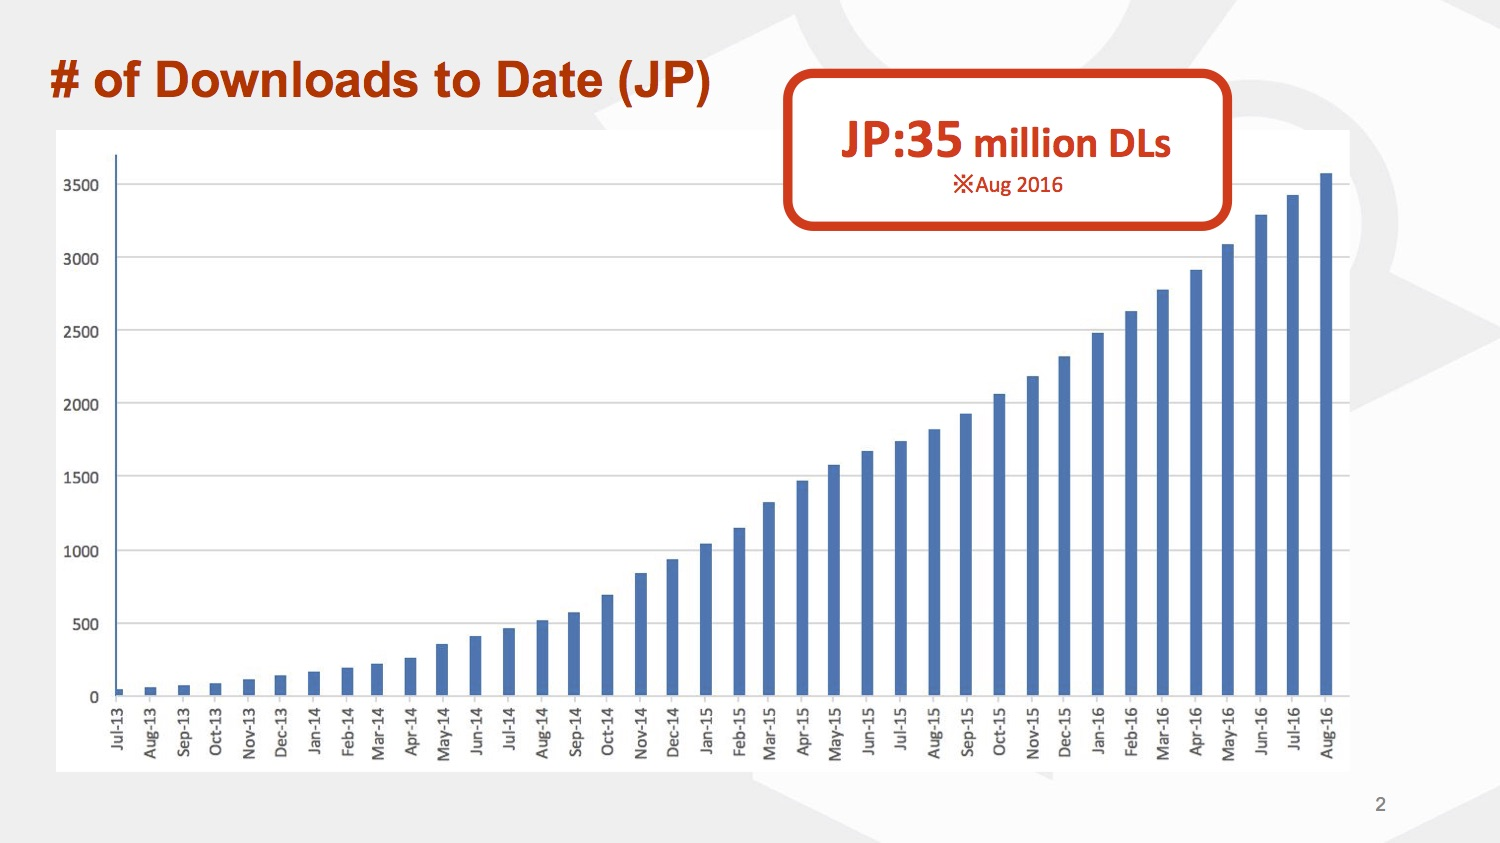 Mercari has seen huge growth in Japan. This graph ends in August; in the time since, the company has crossed the 40m downloads mark.